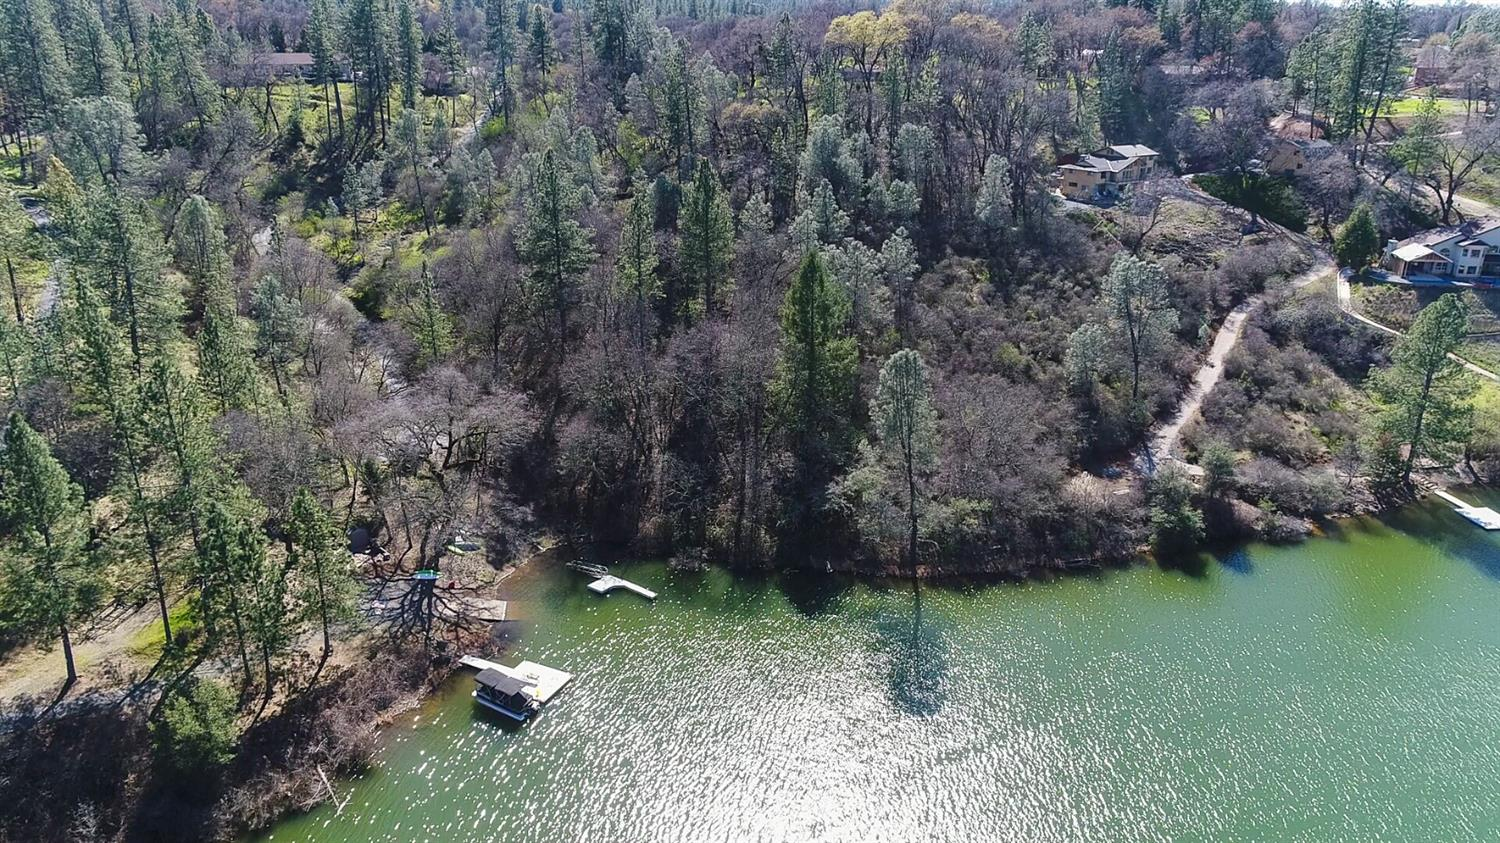 DREAMS DO COME TRUE, not Once But Twice! Rare LAKE COMBIE PROPERTY. Water Lake Frontage, Lake Combie Access and Views of the Sierras and not just One but TWO PARCELS (sold separately)! Own Both parcels and secure the entire lake frontage for privacy, and bring both properties to their Ultimate Glory! This 3.23 Acre Property is the Hidden Gem of Meadow Vista! The neighboring parcel is 2.3 Acres and next door with Lake Access (MLS221026033)! Bring your imagination in regards to the existing home, or use it to your advantage to build a new home of your Dreams Closer to the Water!